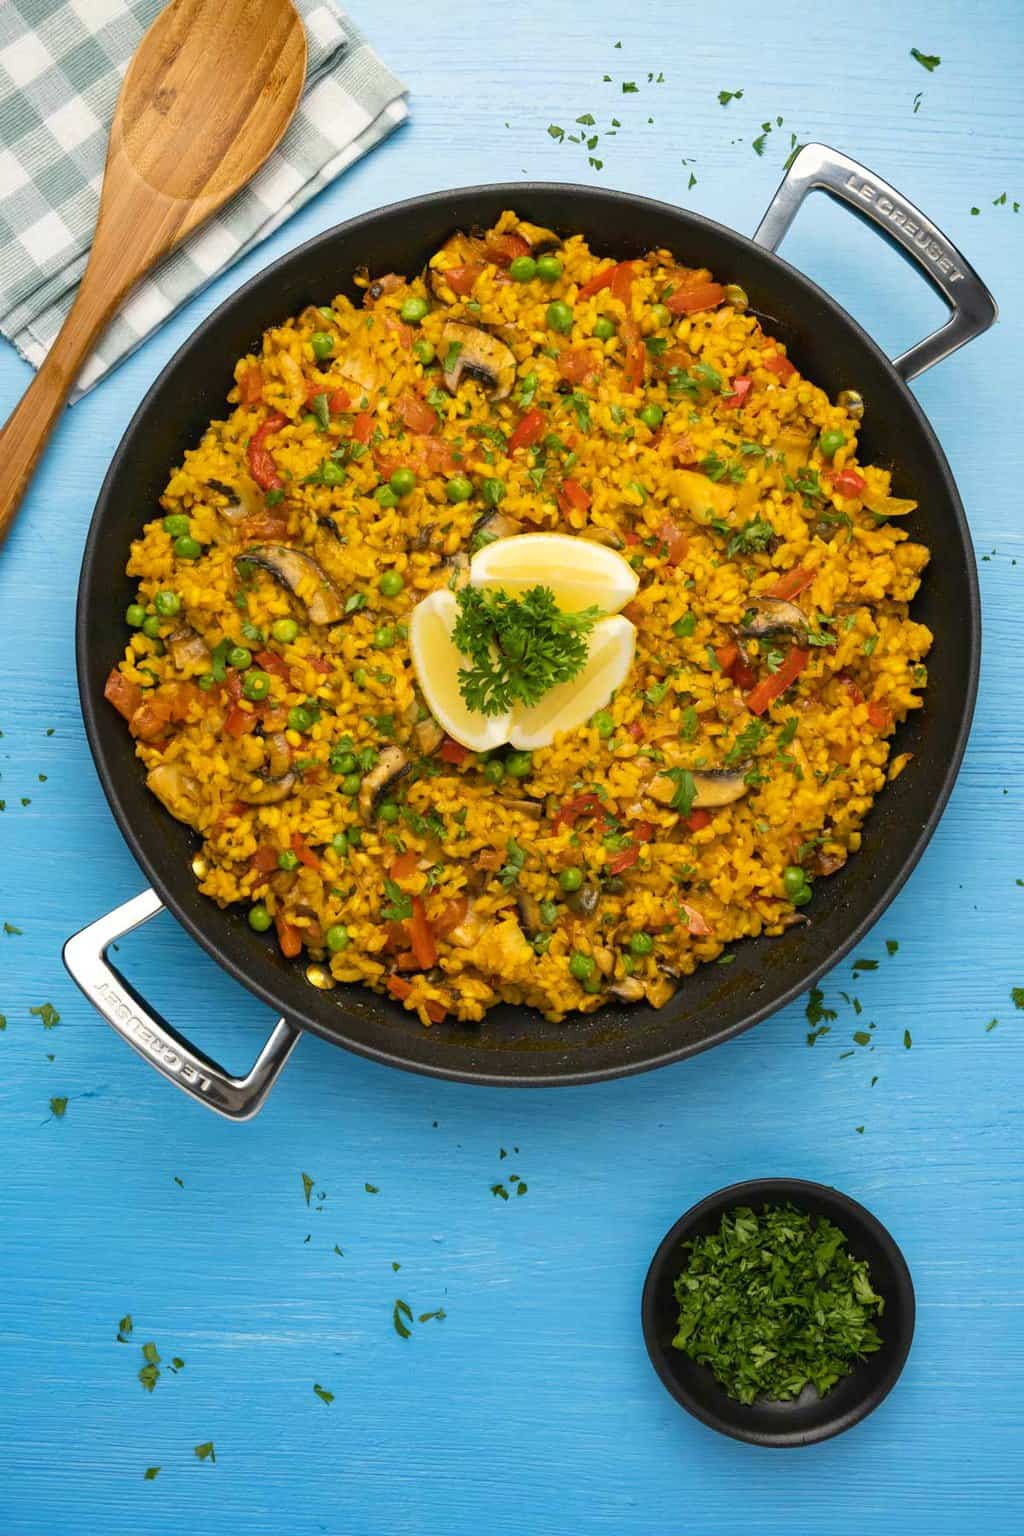 Vegan paella topped with lemon wedges and chopped parsley in a black paella pan.